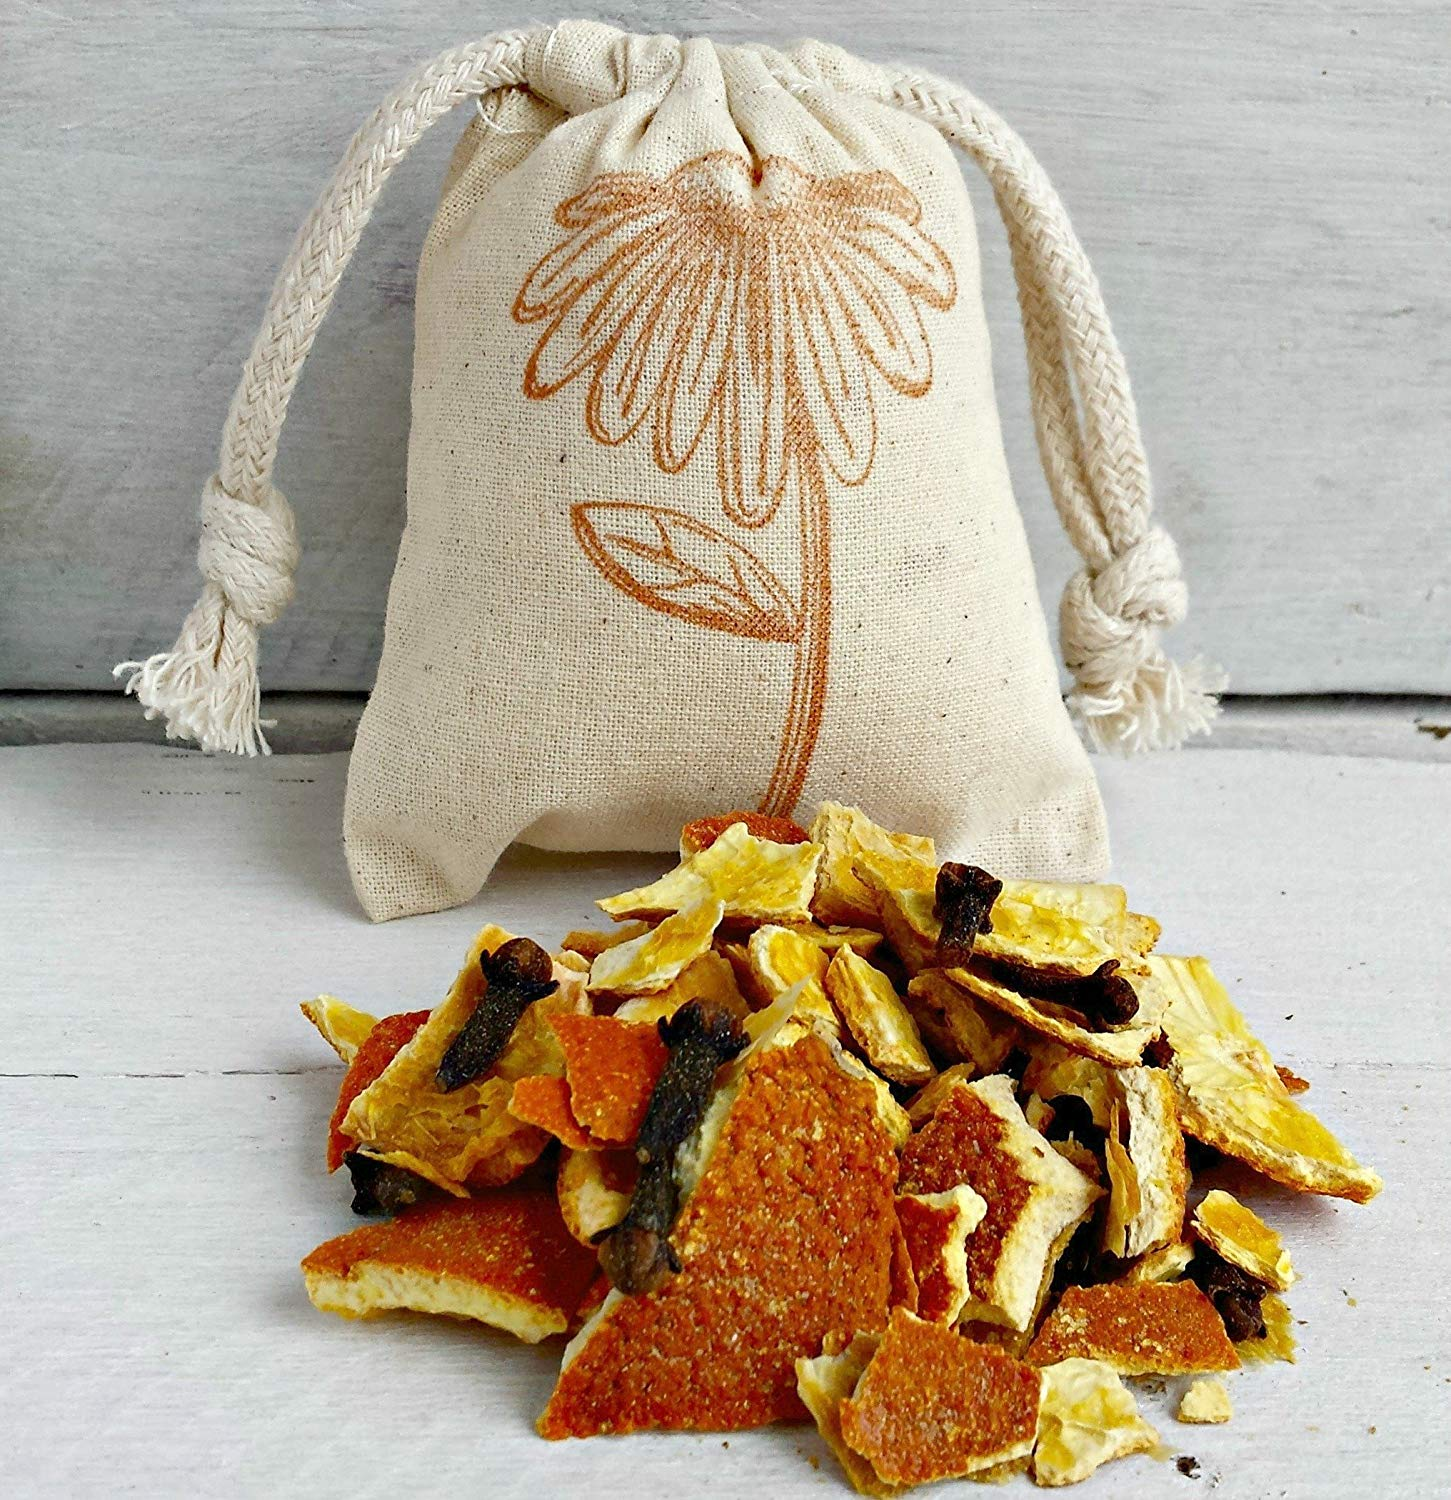 Orange Clove Sachets | Aromatherapy | Orange Clove Scented Sachets | Sachet Bags | Sachet Favors | Orange Wedding Favor | Scented Drawer Bag